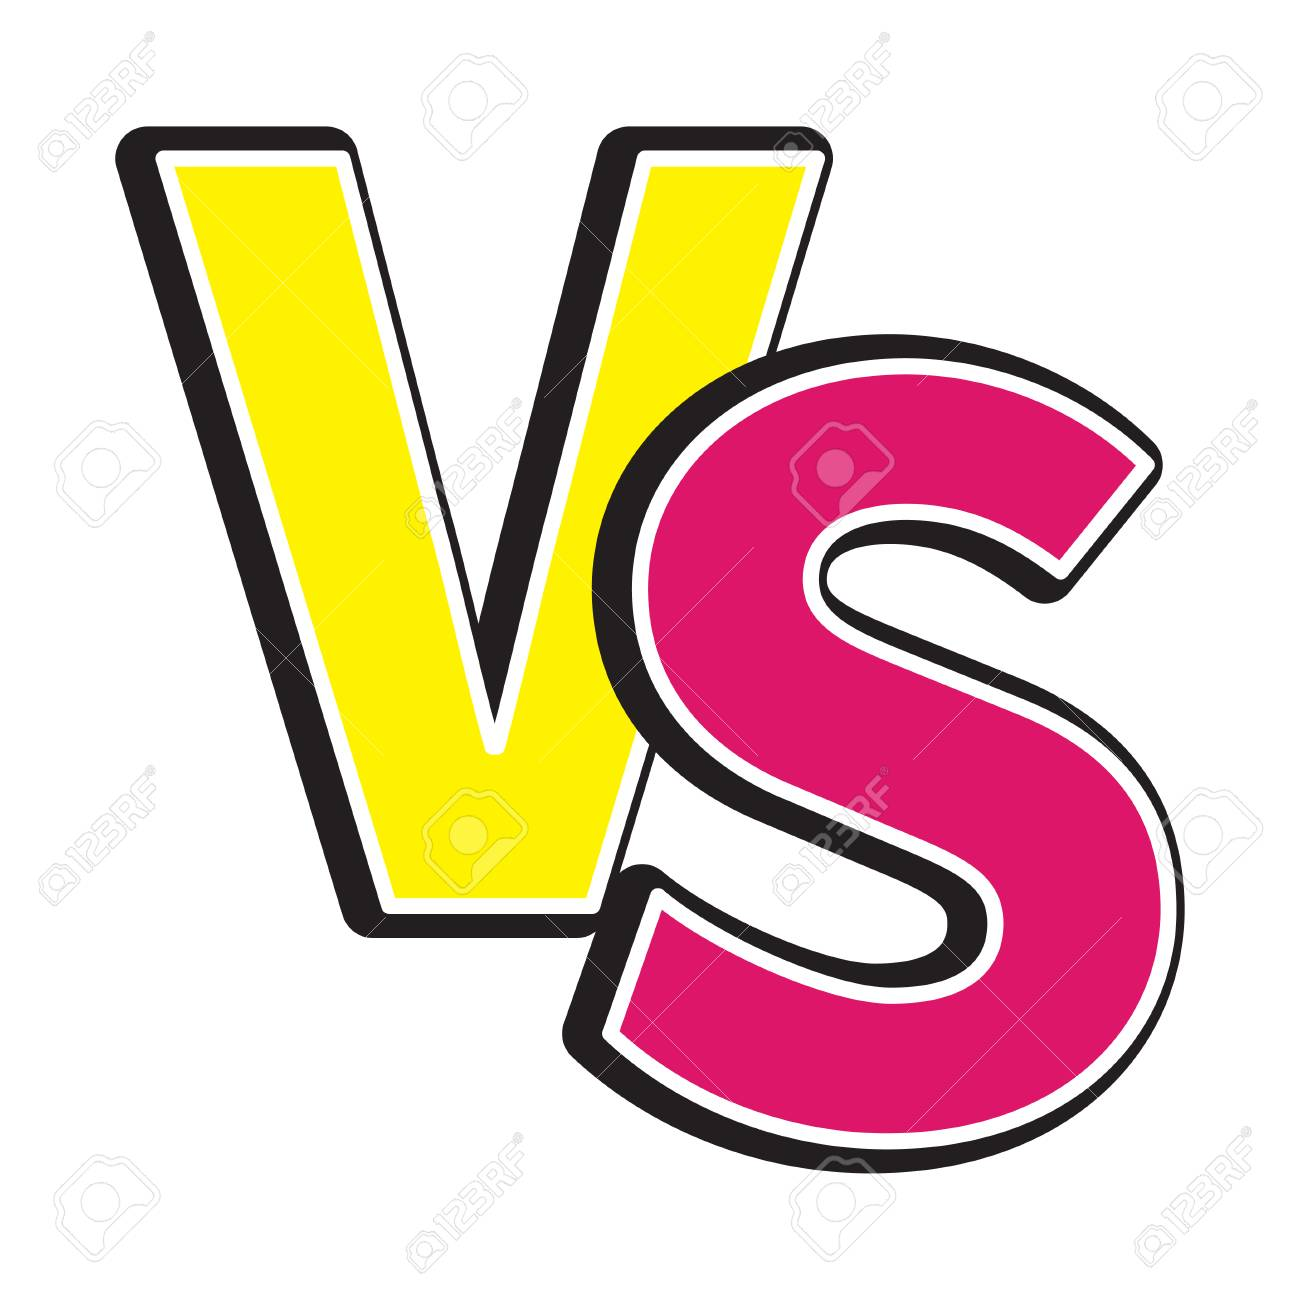 Versus Letters Icon Or Vs Battle Fight Competition Sign Symbol